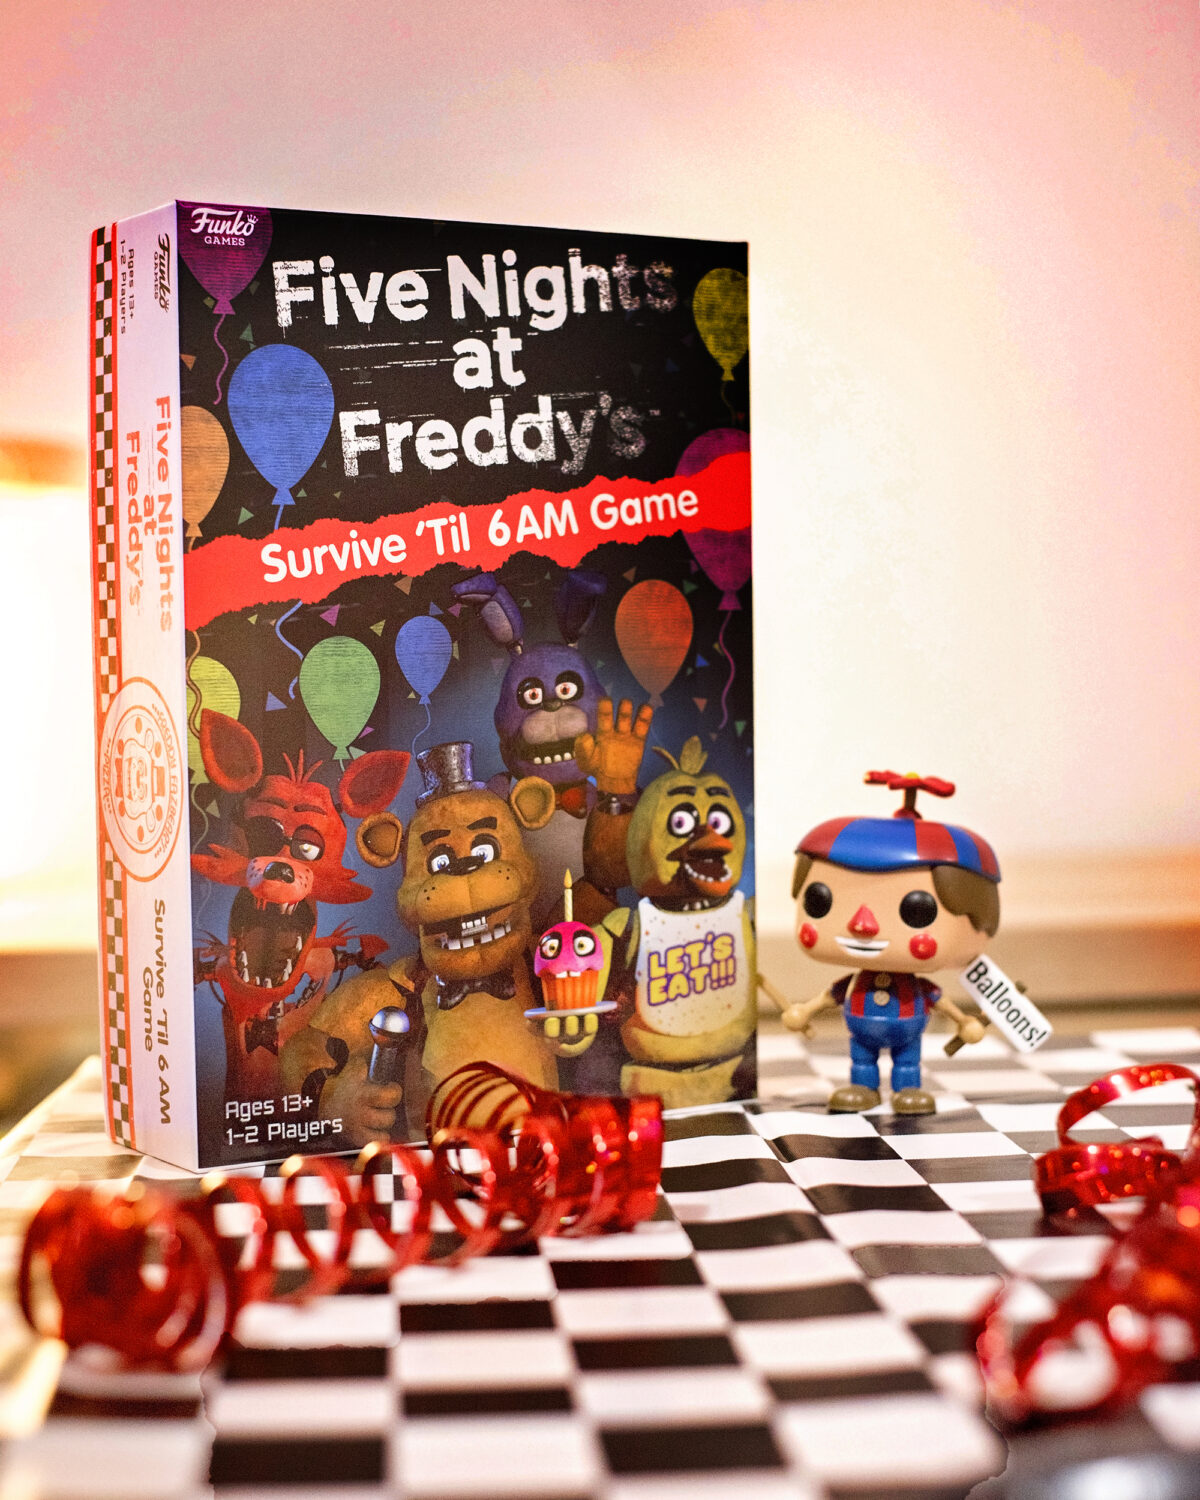 Image shows the Five Nights at Freddy's Survive 'til 6AM game on a table covered with a black and white checkered tablecloth, strewn with red metallic streamers and with a Funko Pop Vinyl figure of Balloon boy from FNAF stood next to the box. Image by keep up with the jones family.